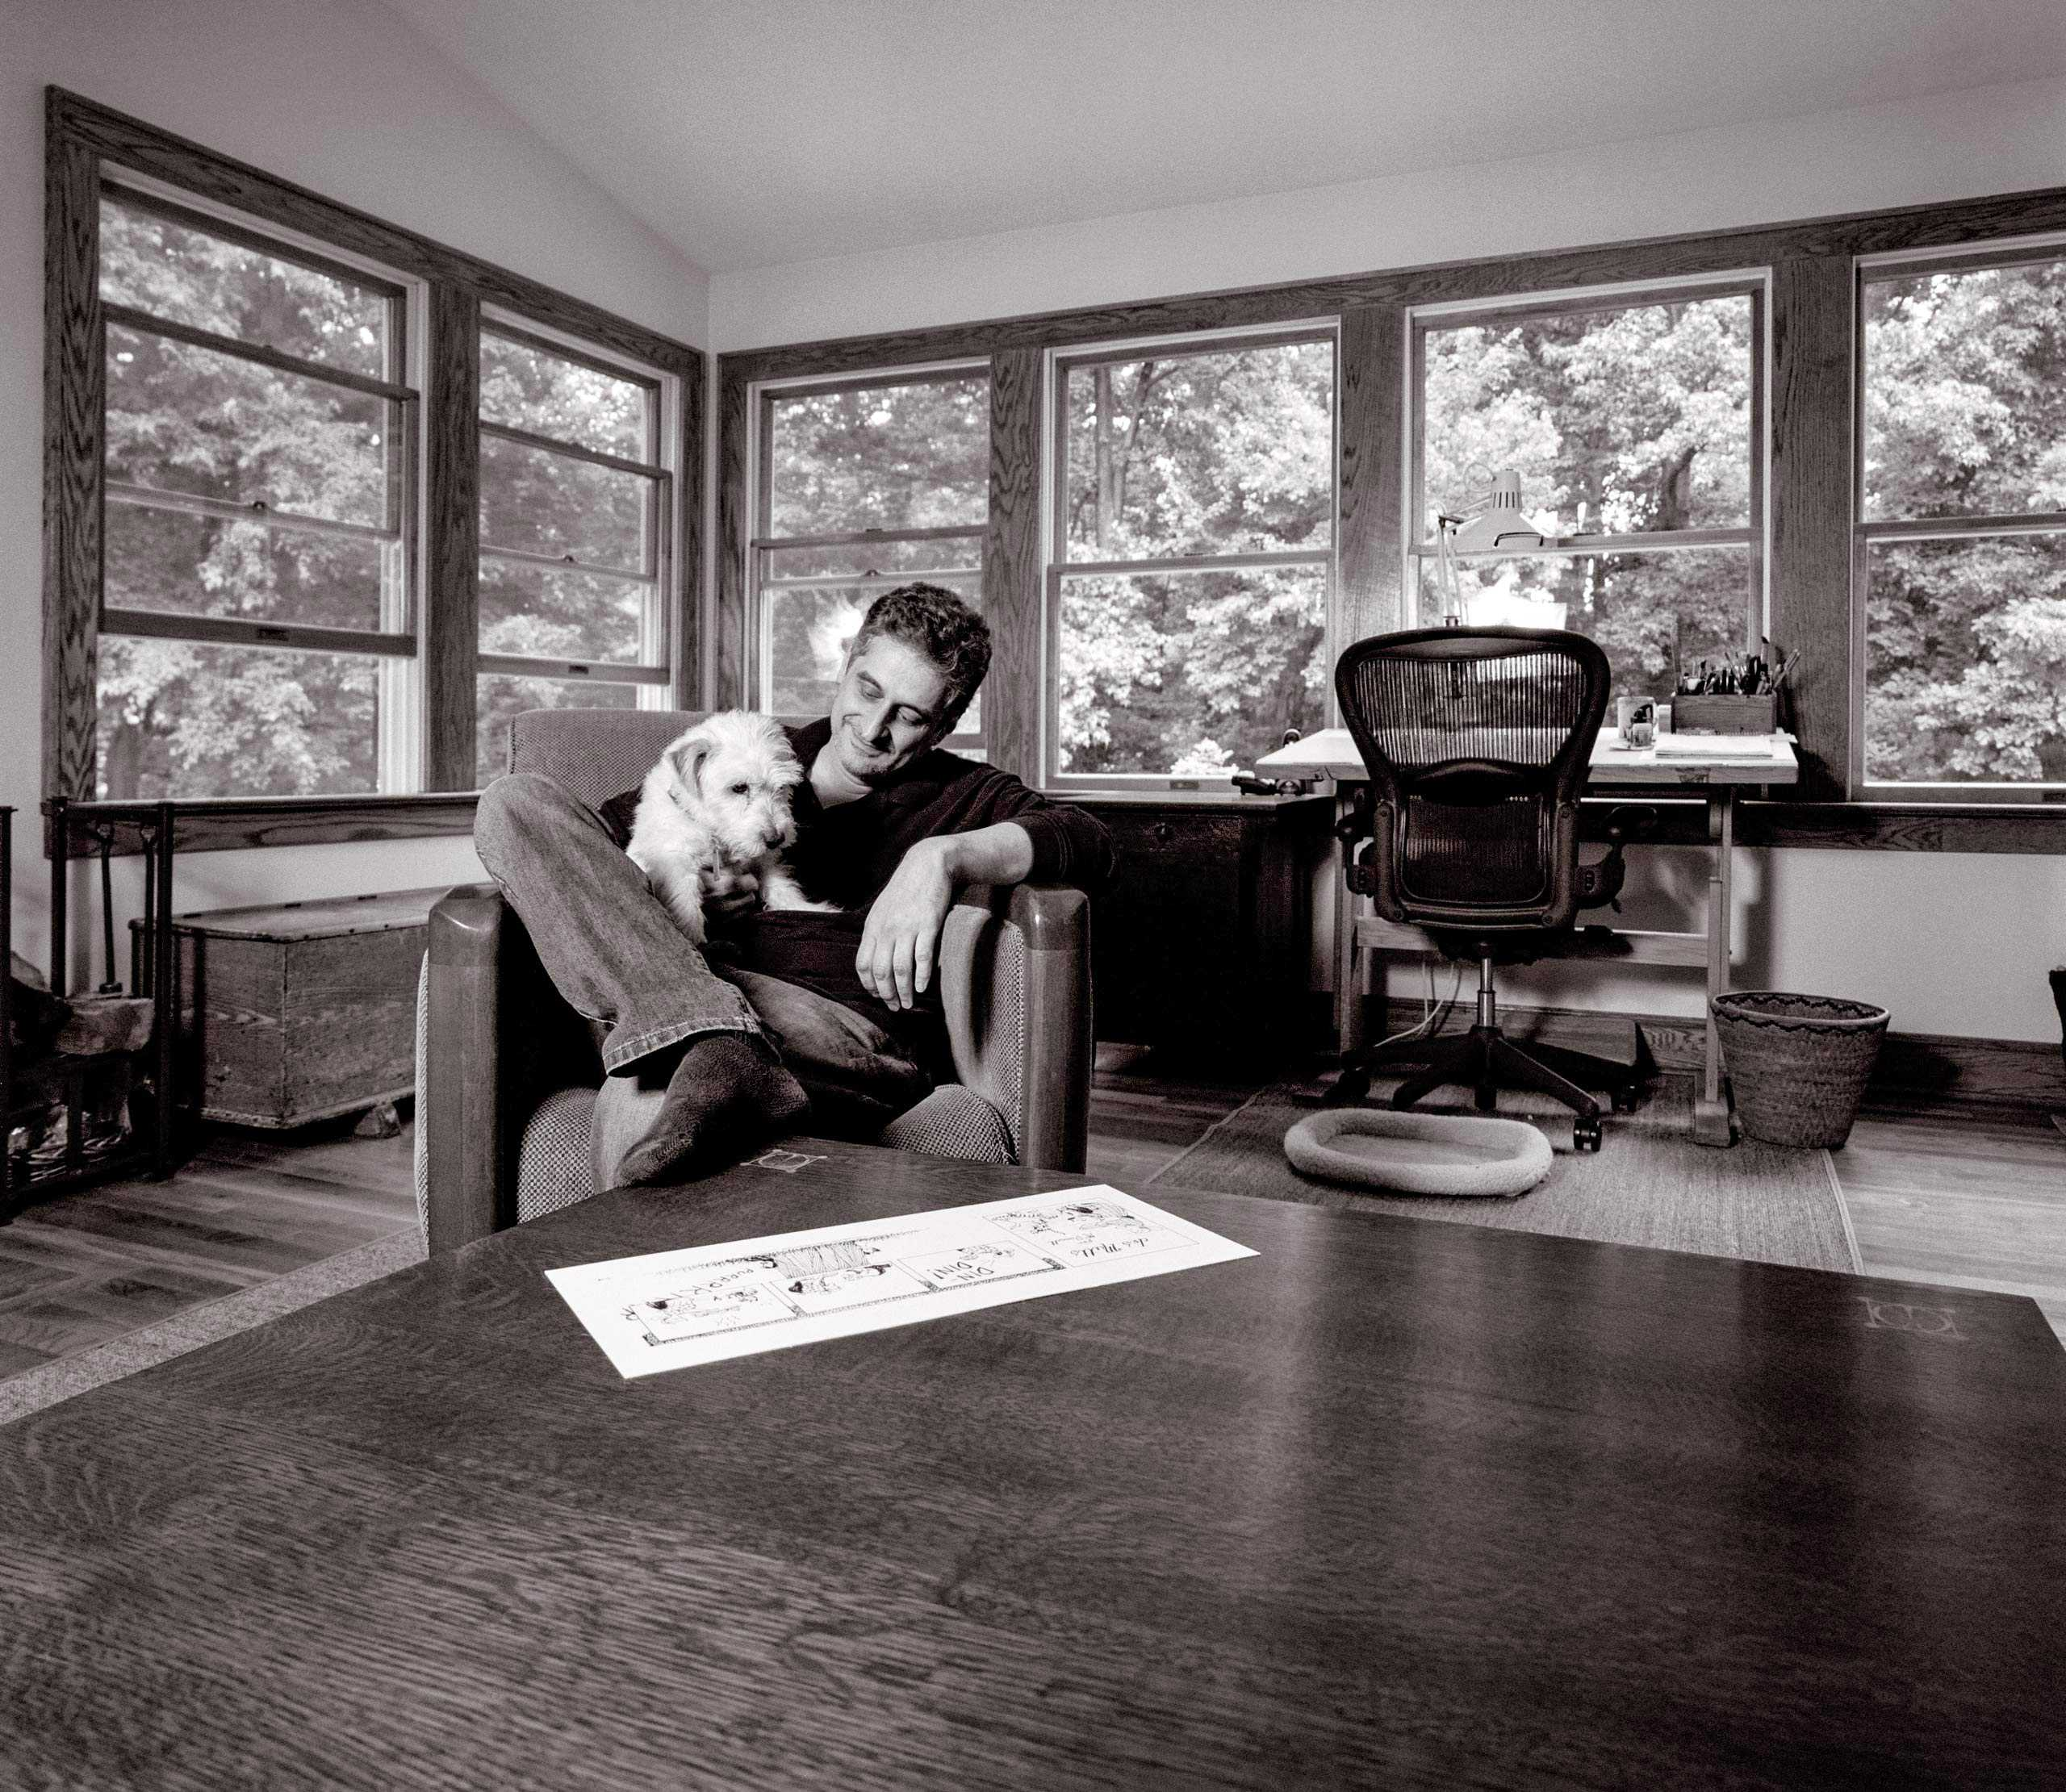 """Cartoonist, Illustrator, Author and Playwright Patrick McDonnell photographed in his studio for """"The Artist Within"""""""